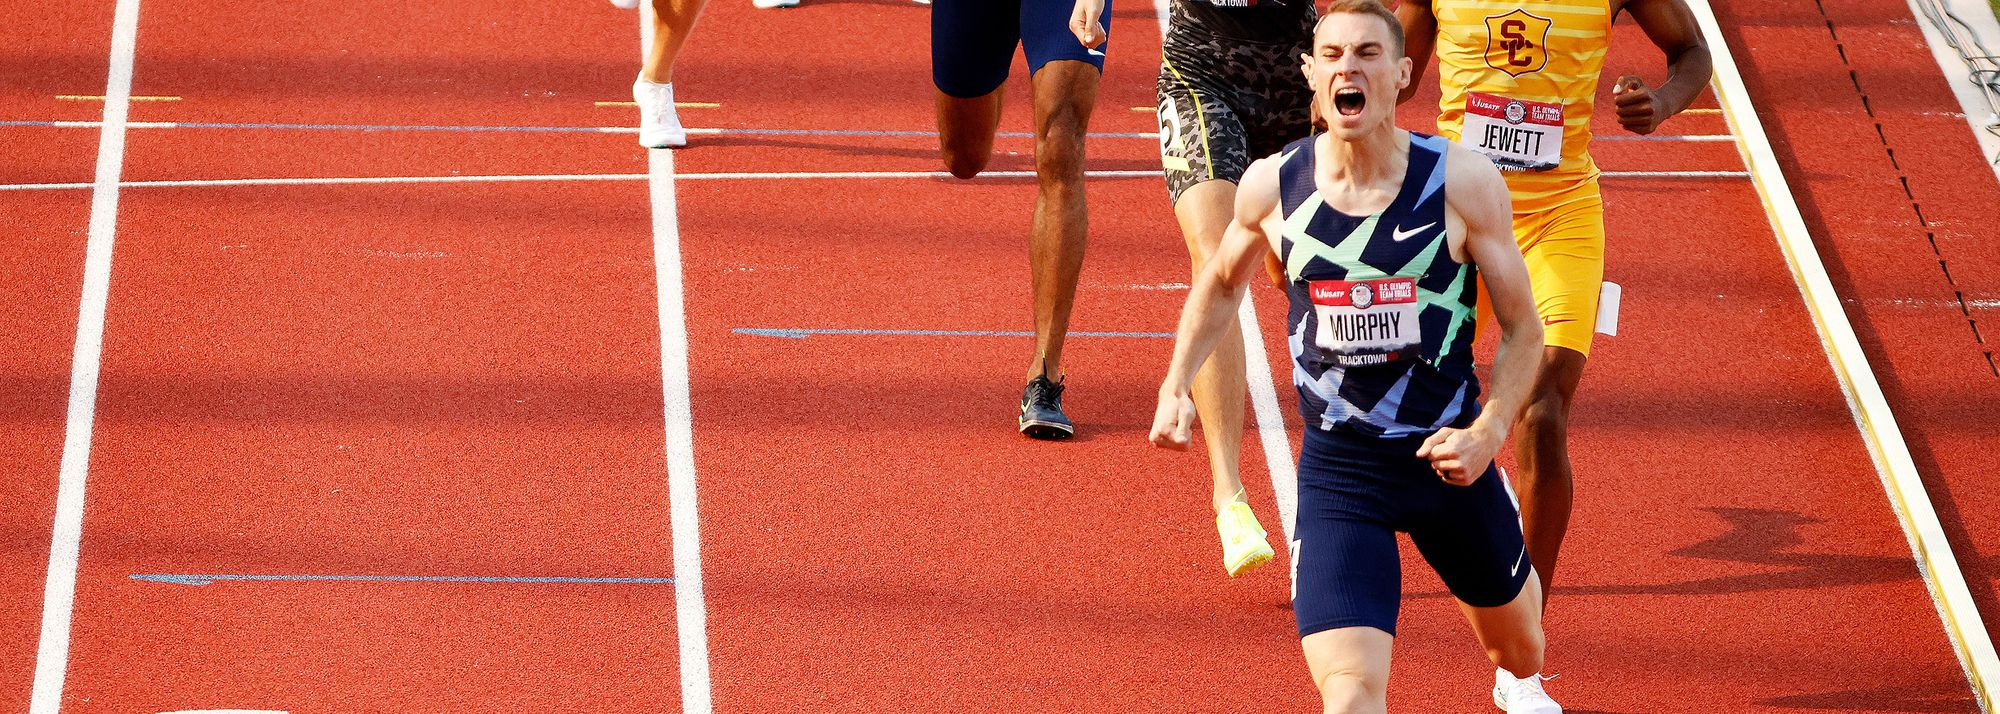 Murphy and Purrier St Pierre take middle-distance titles as Brazier and Simpson miss out